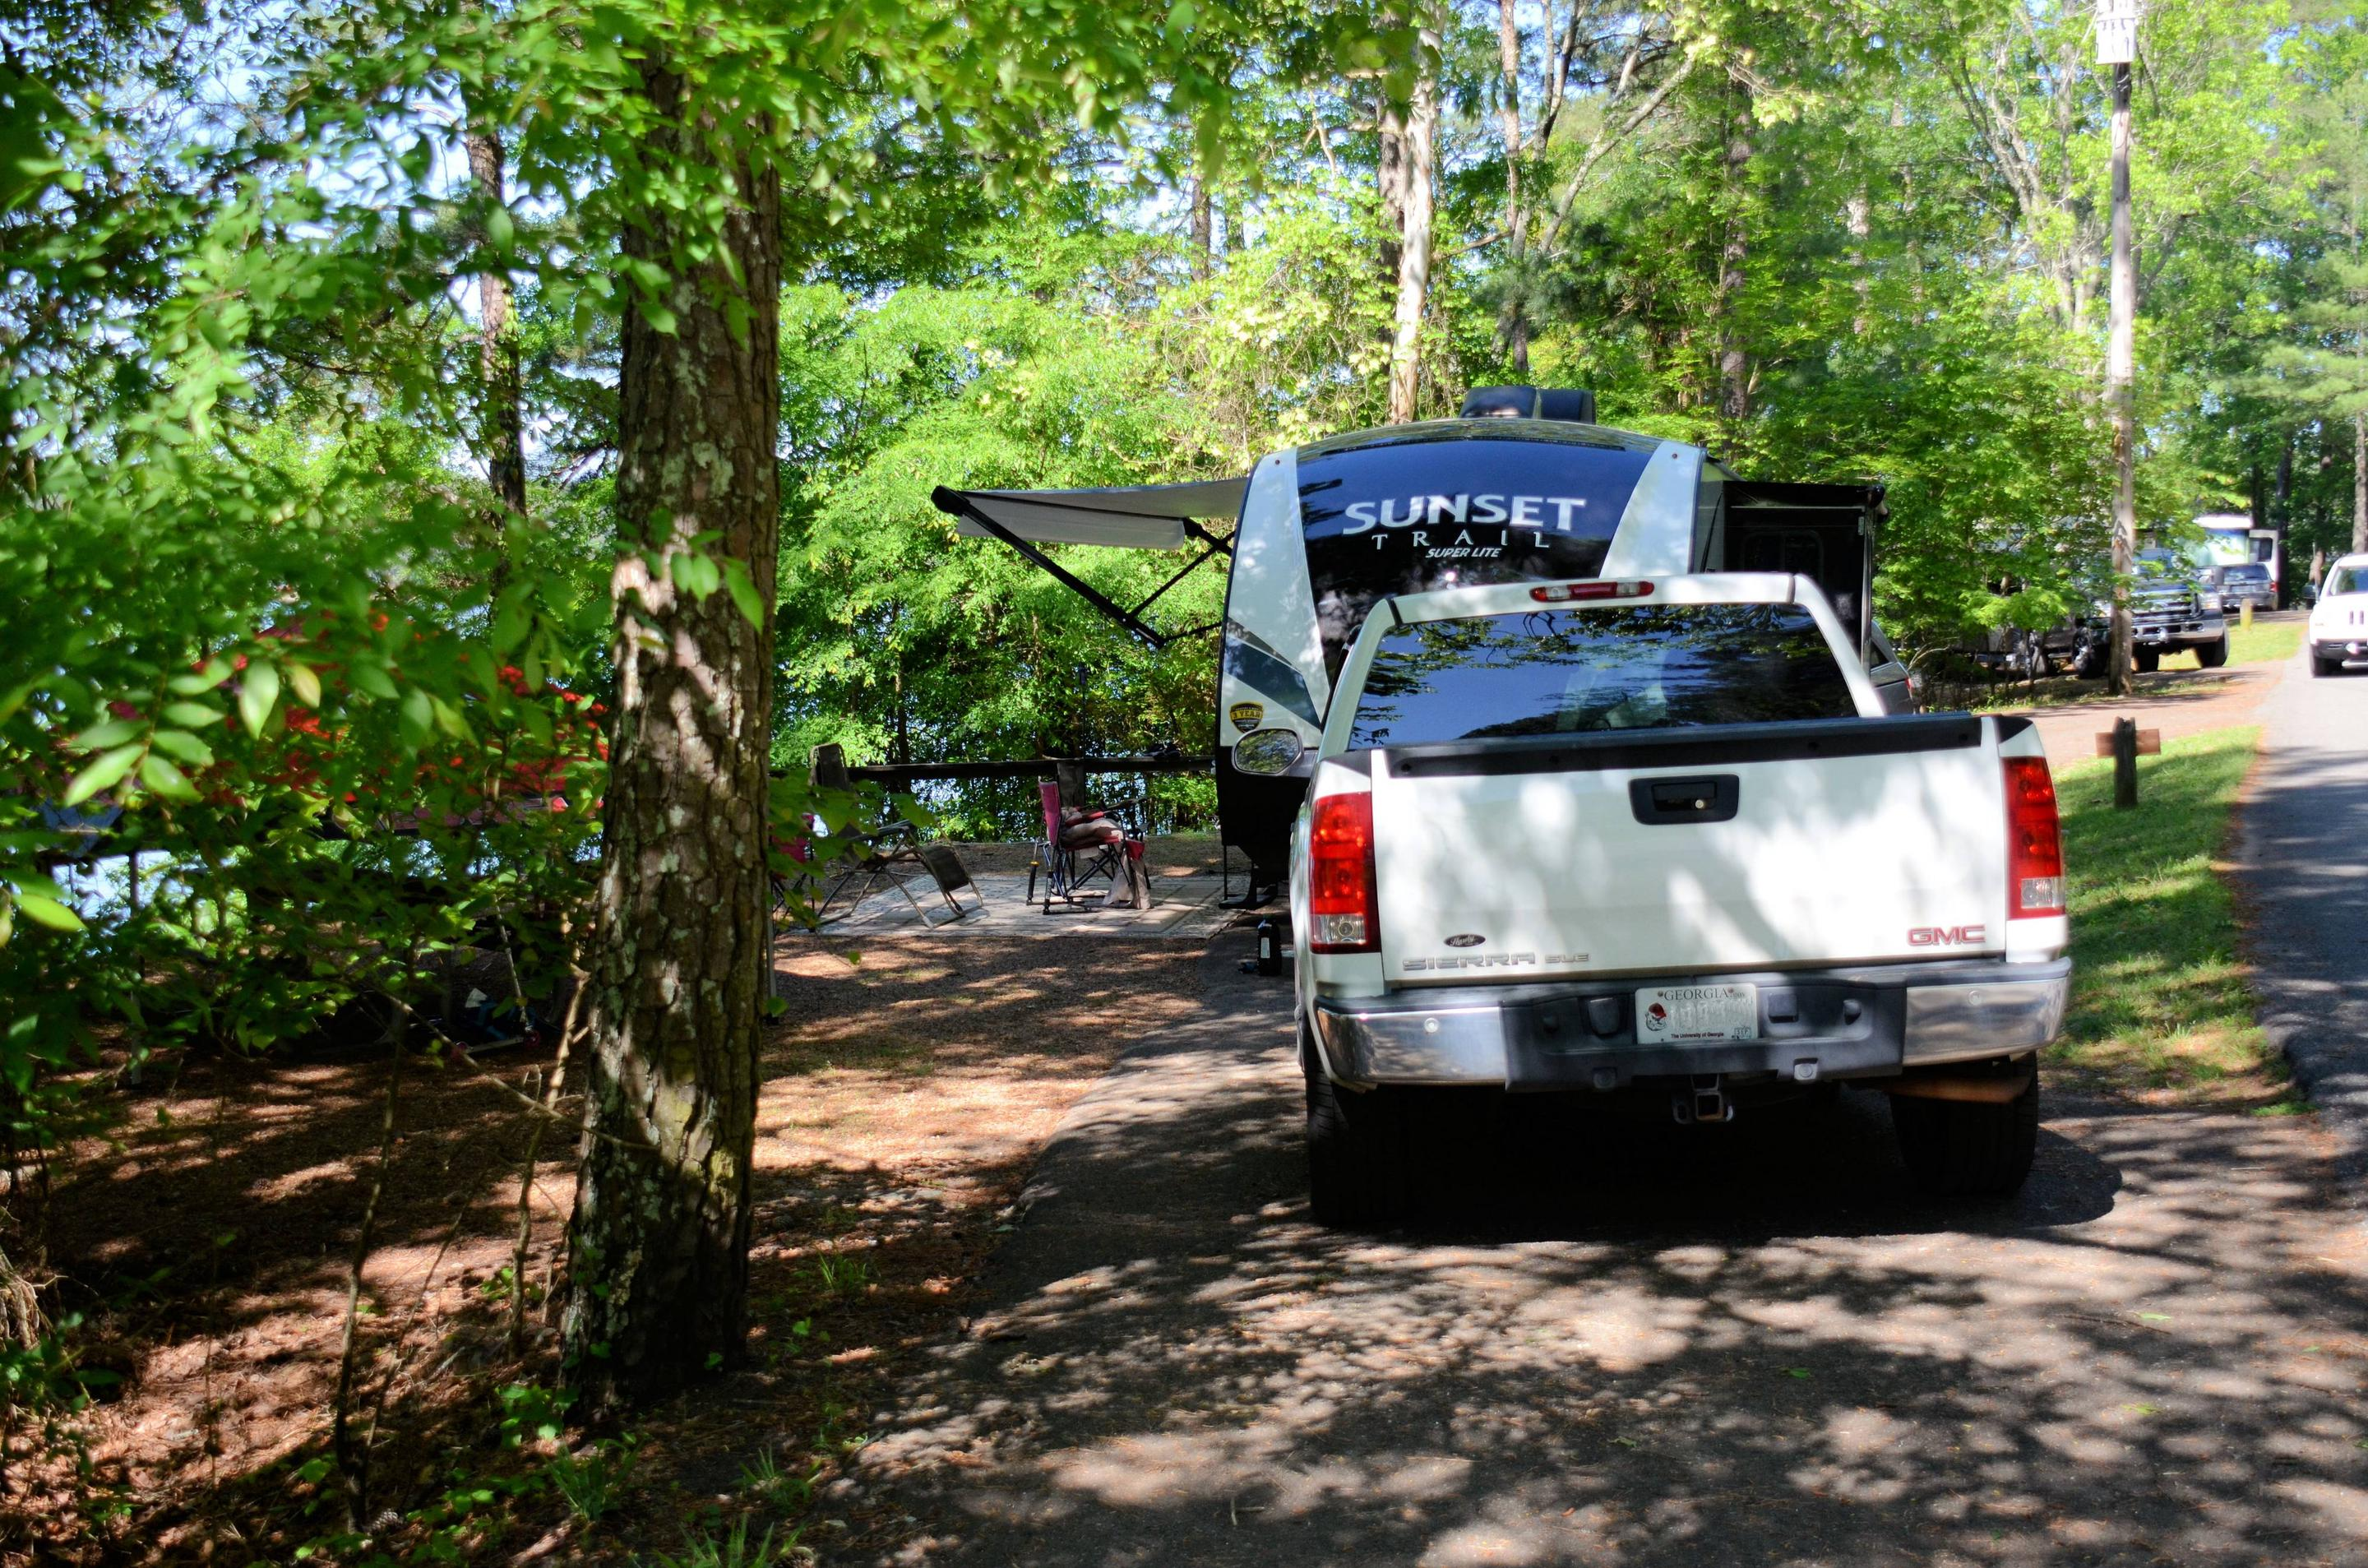 Pull-thru exit, driveway slope, awning-side clearance.McKinney Campground, campsite 48.